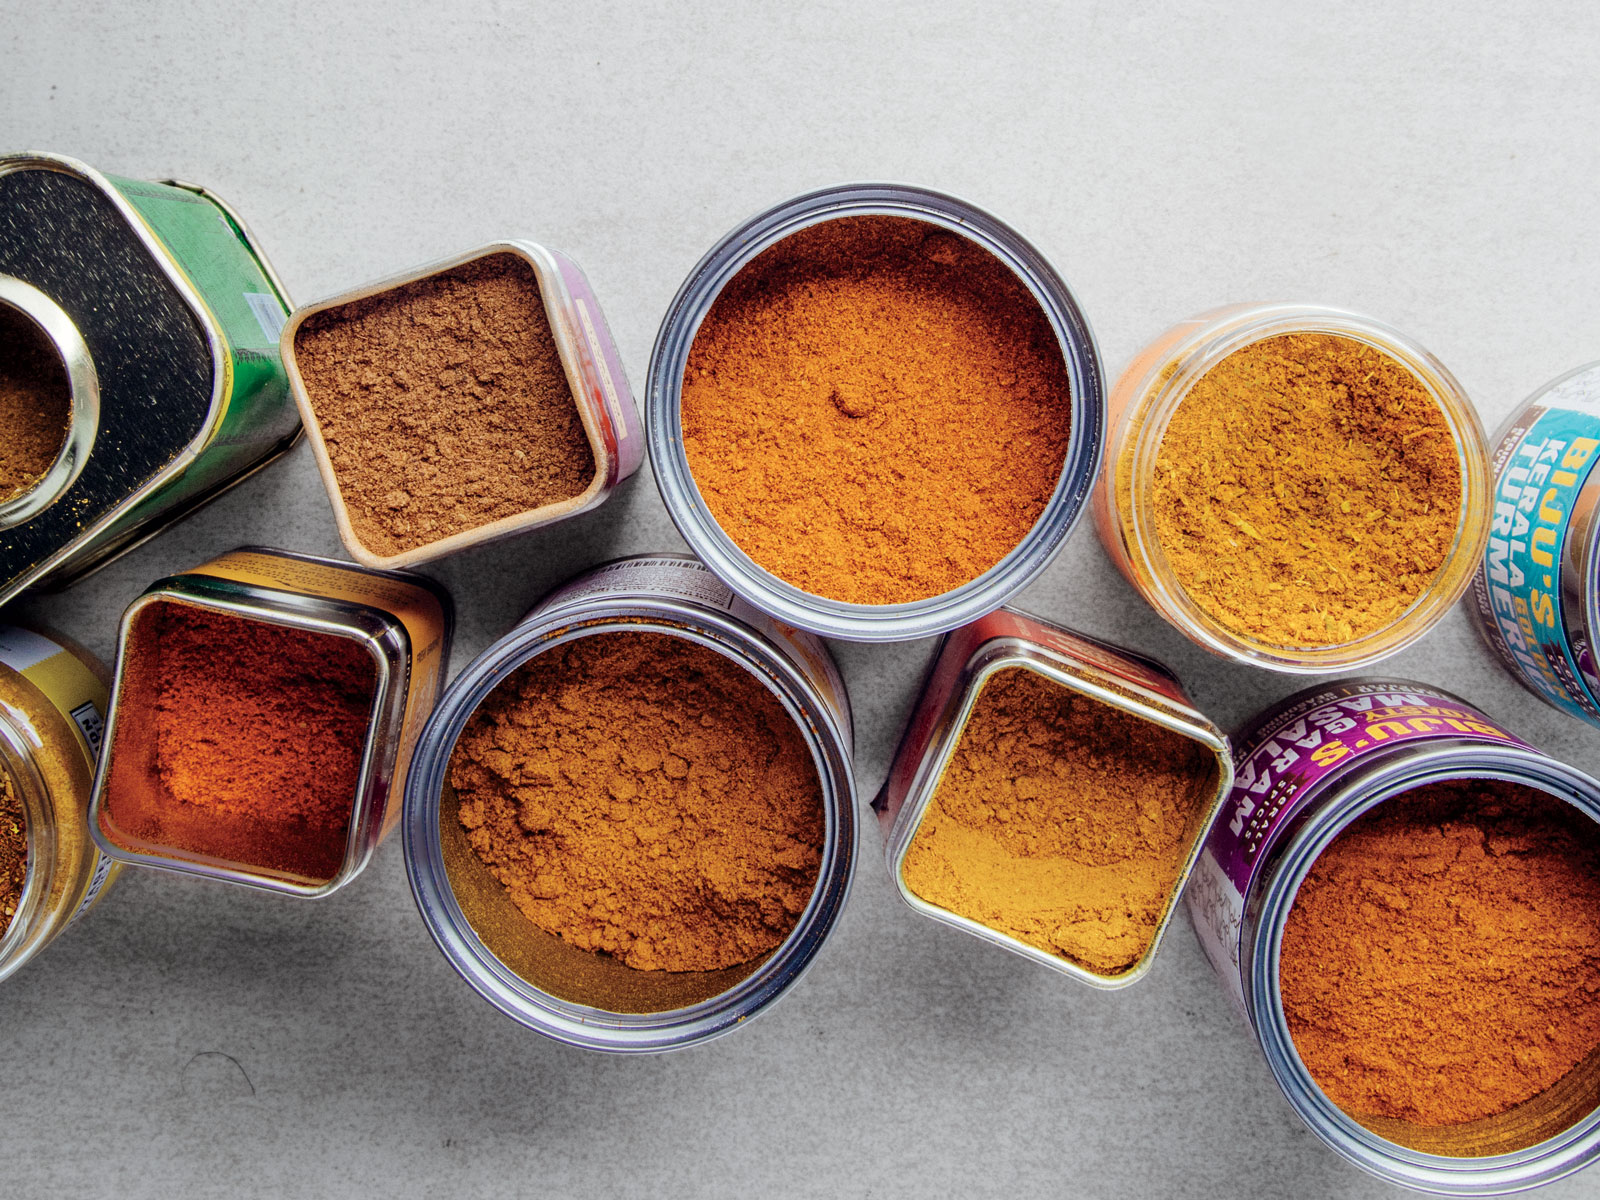 The Best Curry and Spice Blends for Home Cooking